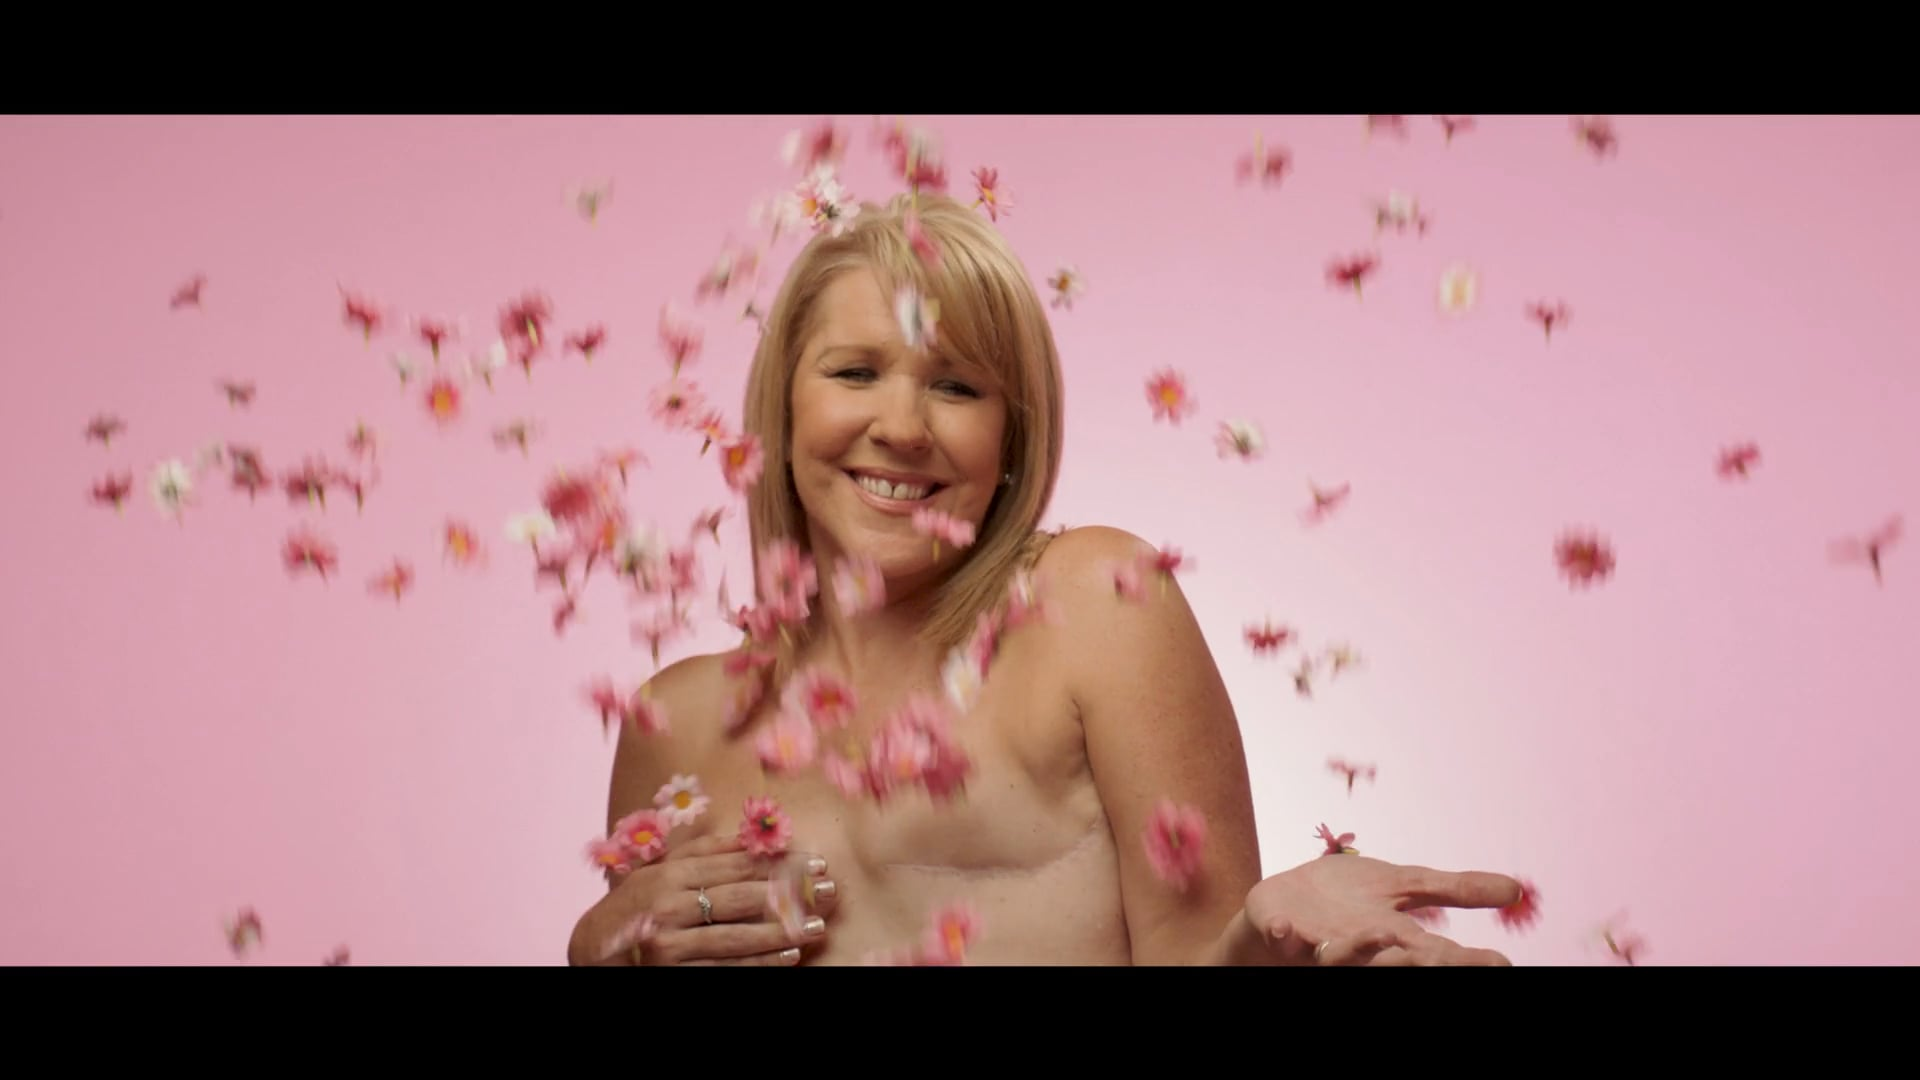 BREAST CANCER AWARENESS - Campaign - Stella McCartney